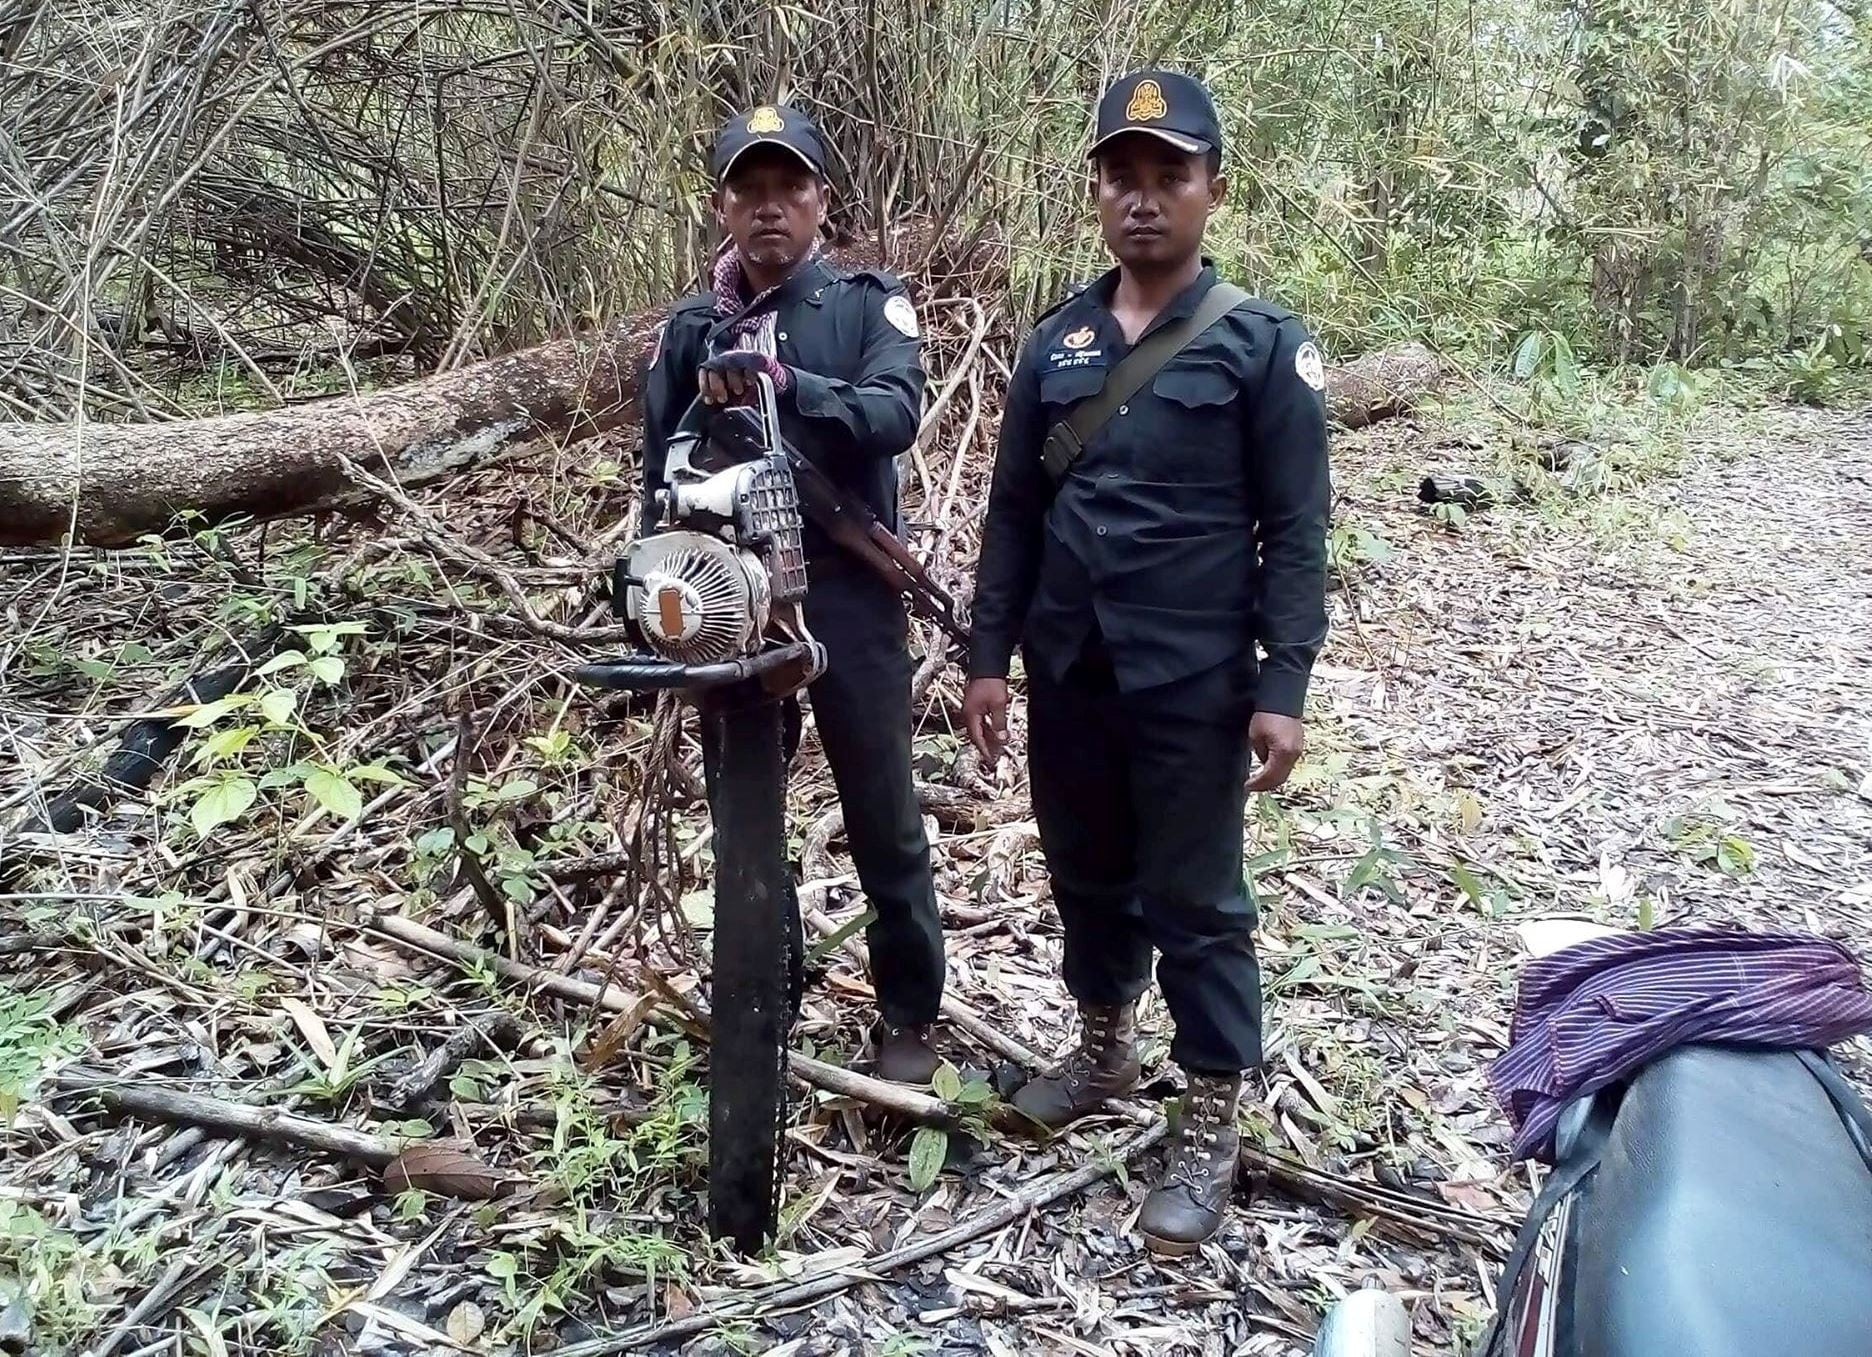 chainsaws Hunting camps and chainsaws Forest rangers cardamom